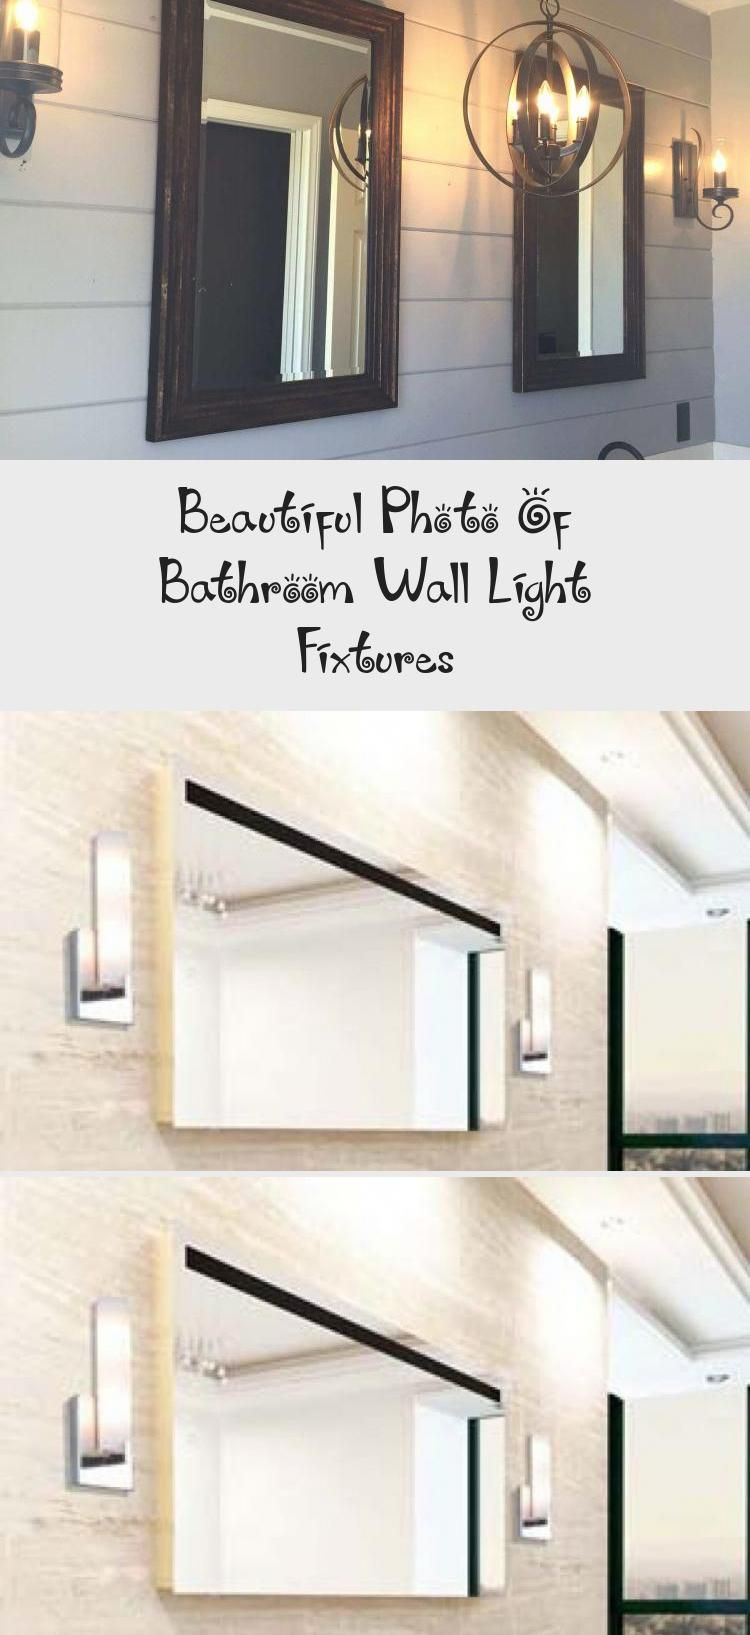 Photo of Beautiful Photo Of Bathroom Wall Light Fixtures – Bathroom